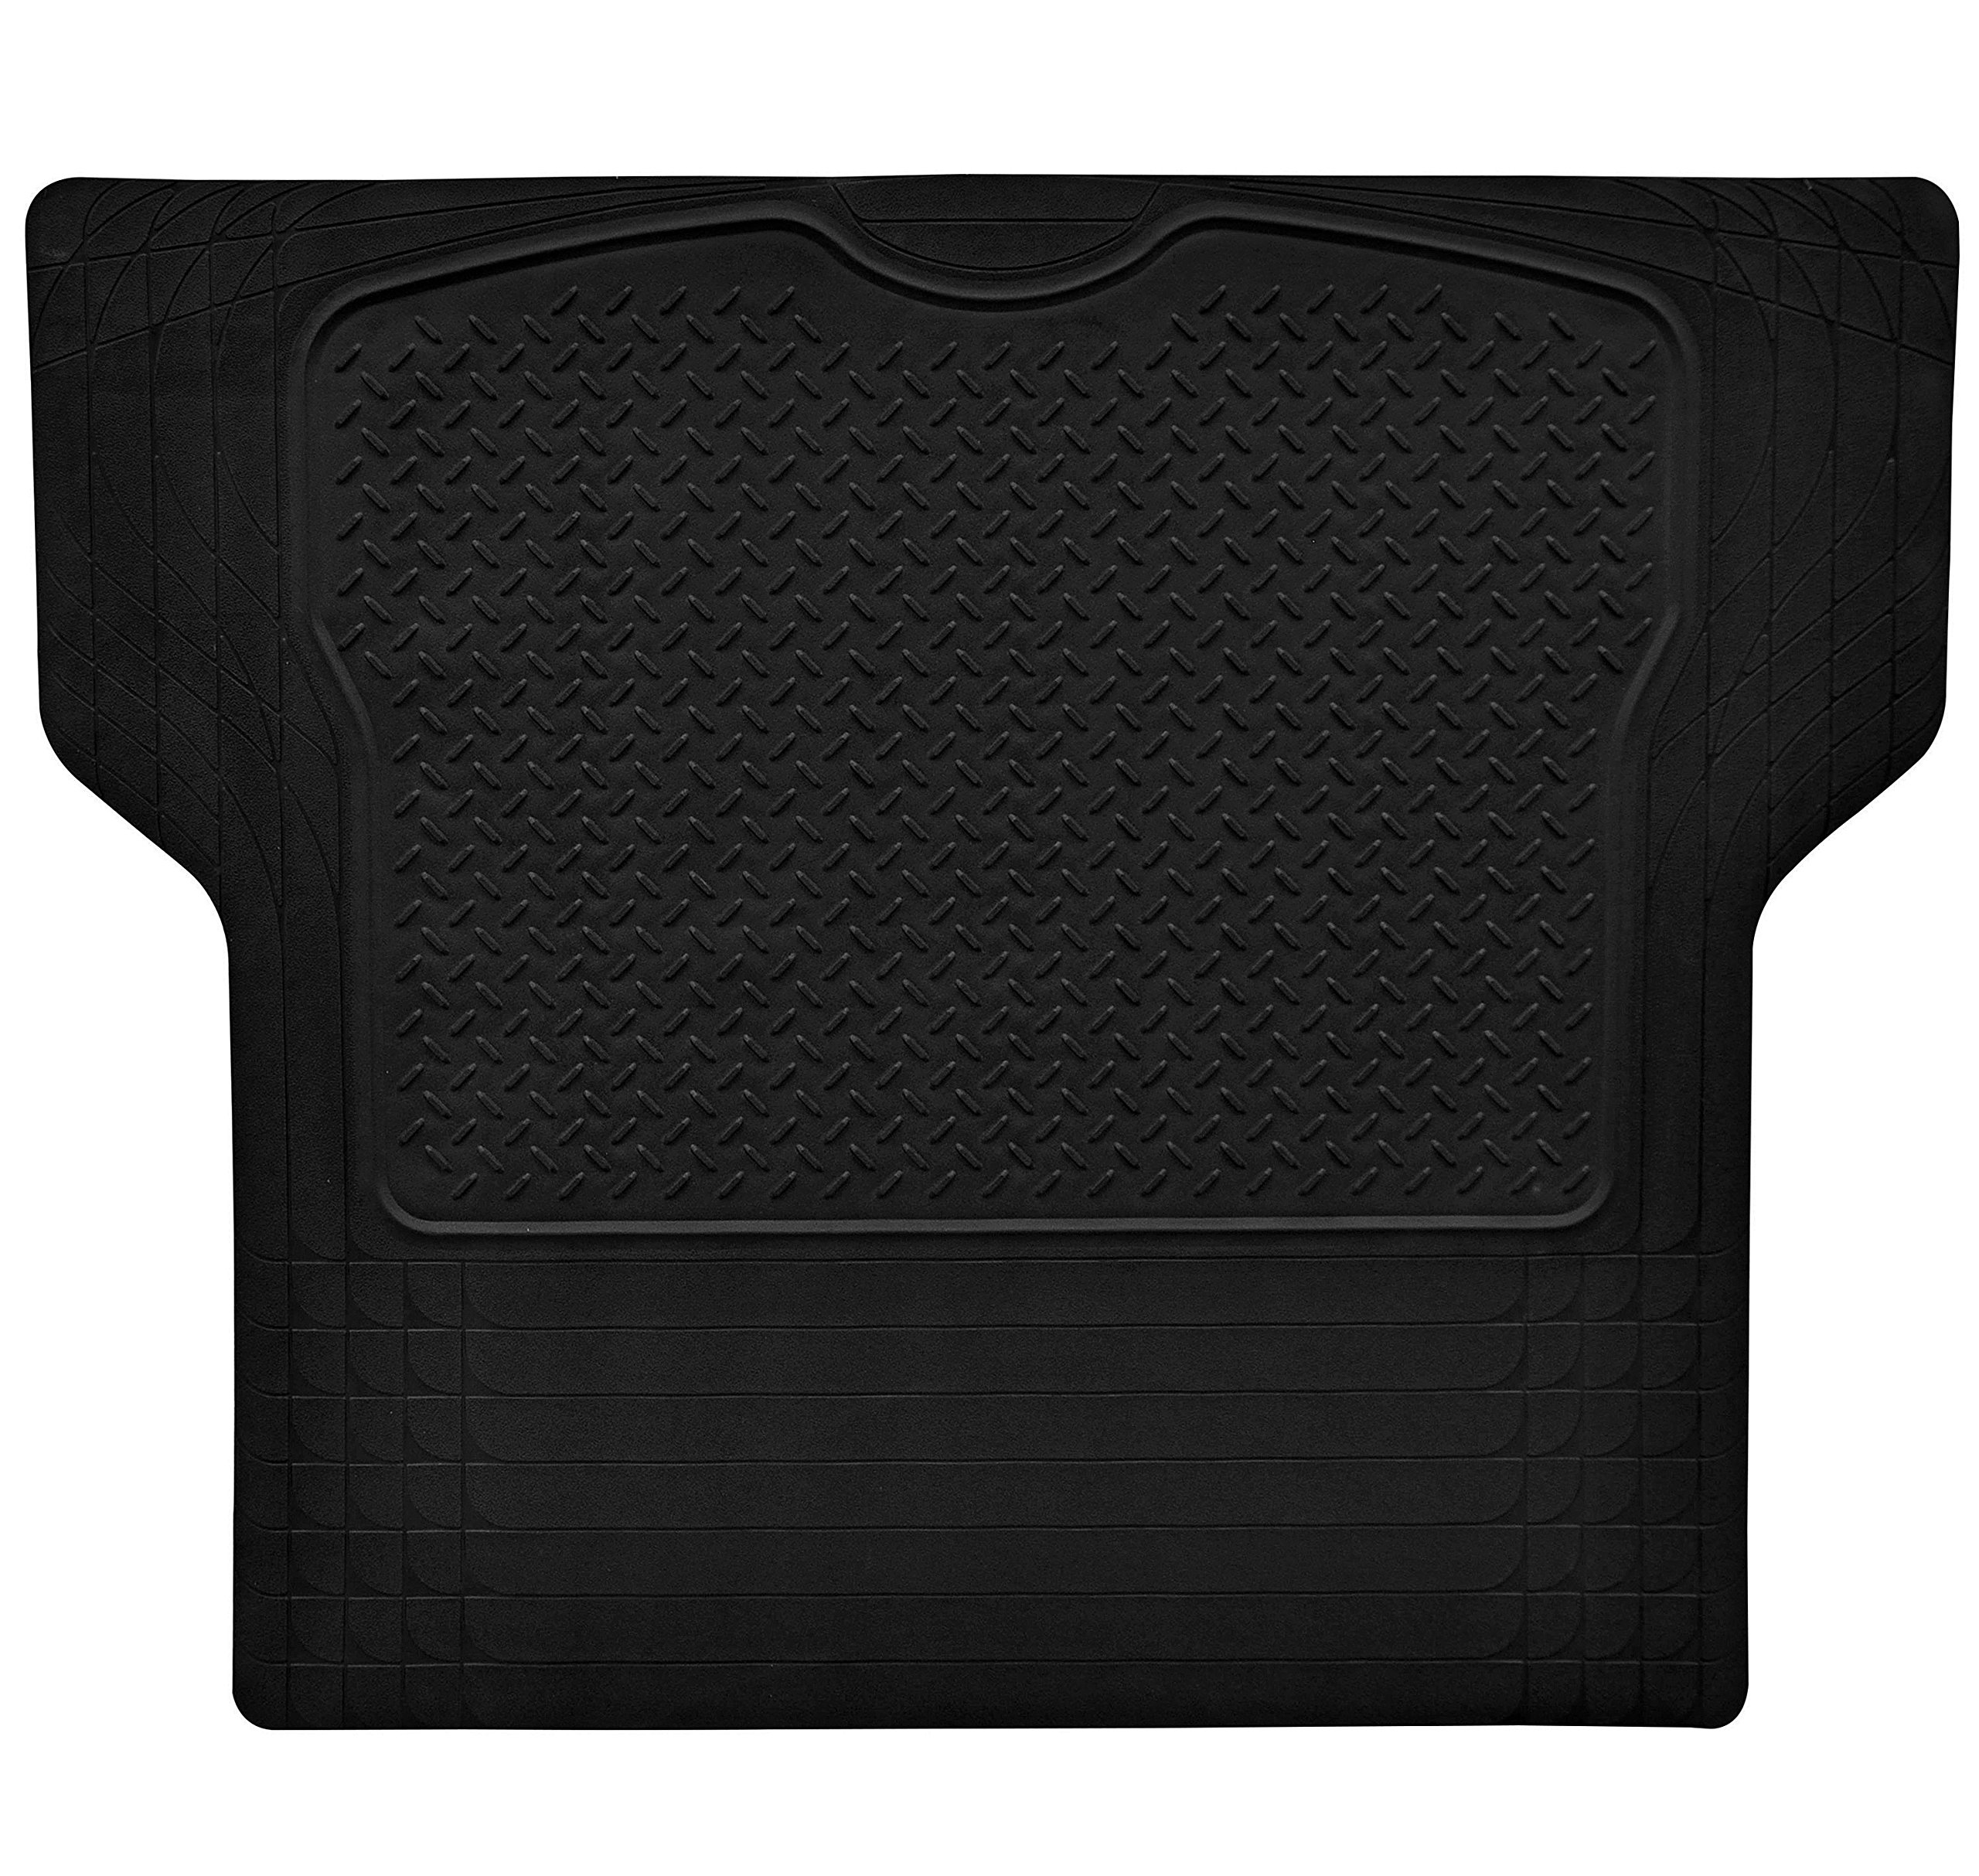 Gititlys Heavy Duty Rubber Car Trunk Cargo Floor Mat Cargo Liner Black Trim-to-Fit All Weather for Auto SUV Van Truck Jeep - by